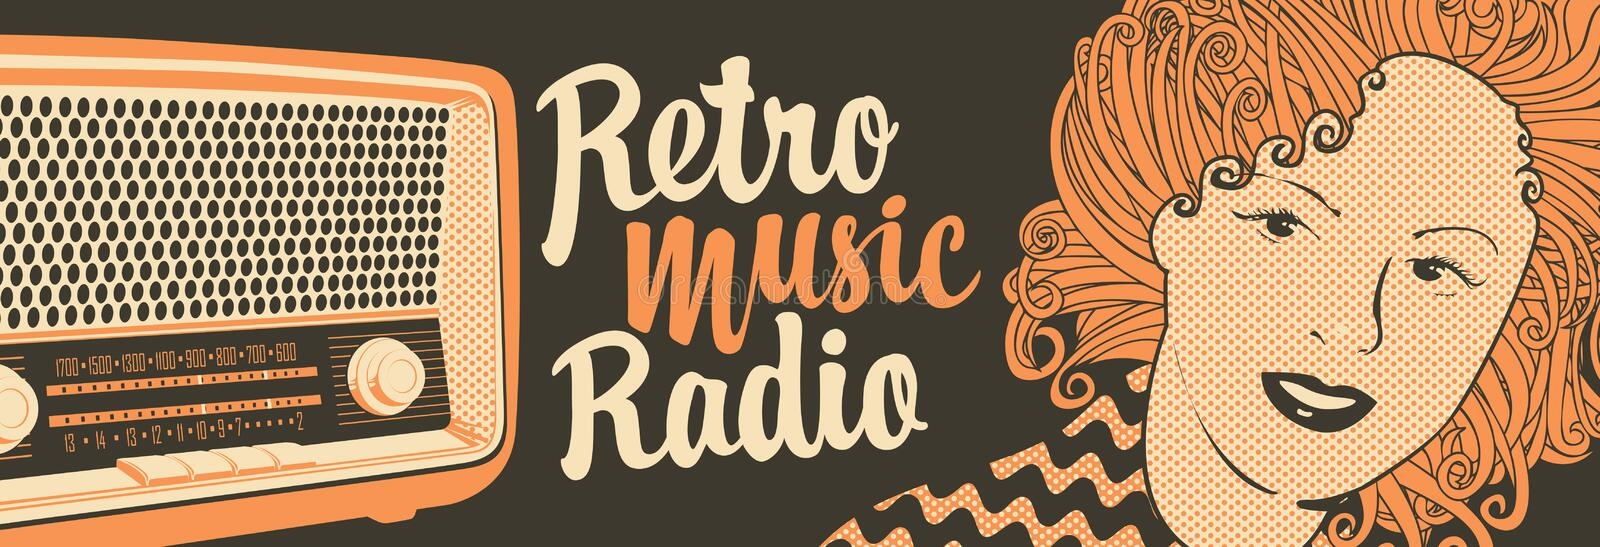 Banner for retro music radio with old radio receiver. Vector banner for radio station with an old radio receiver, woman face and inscription Retro music radio stock illustration